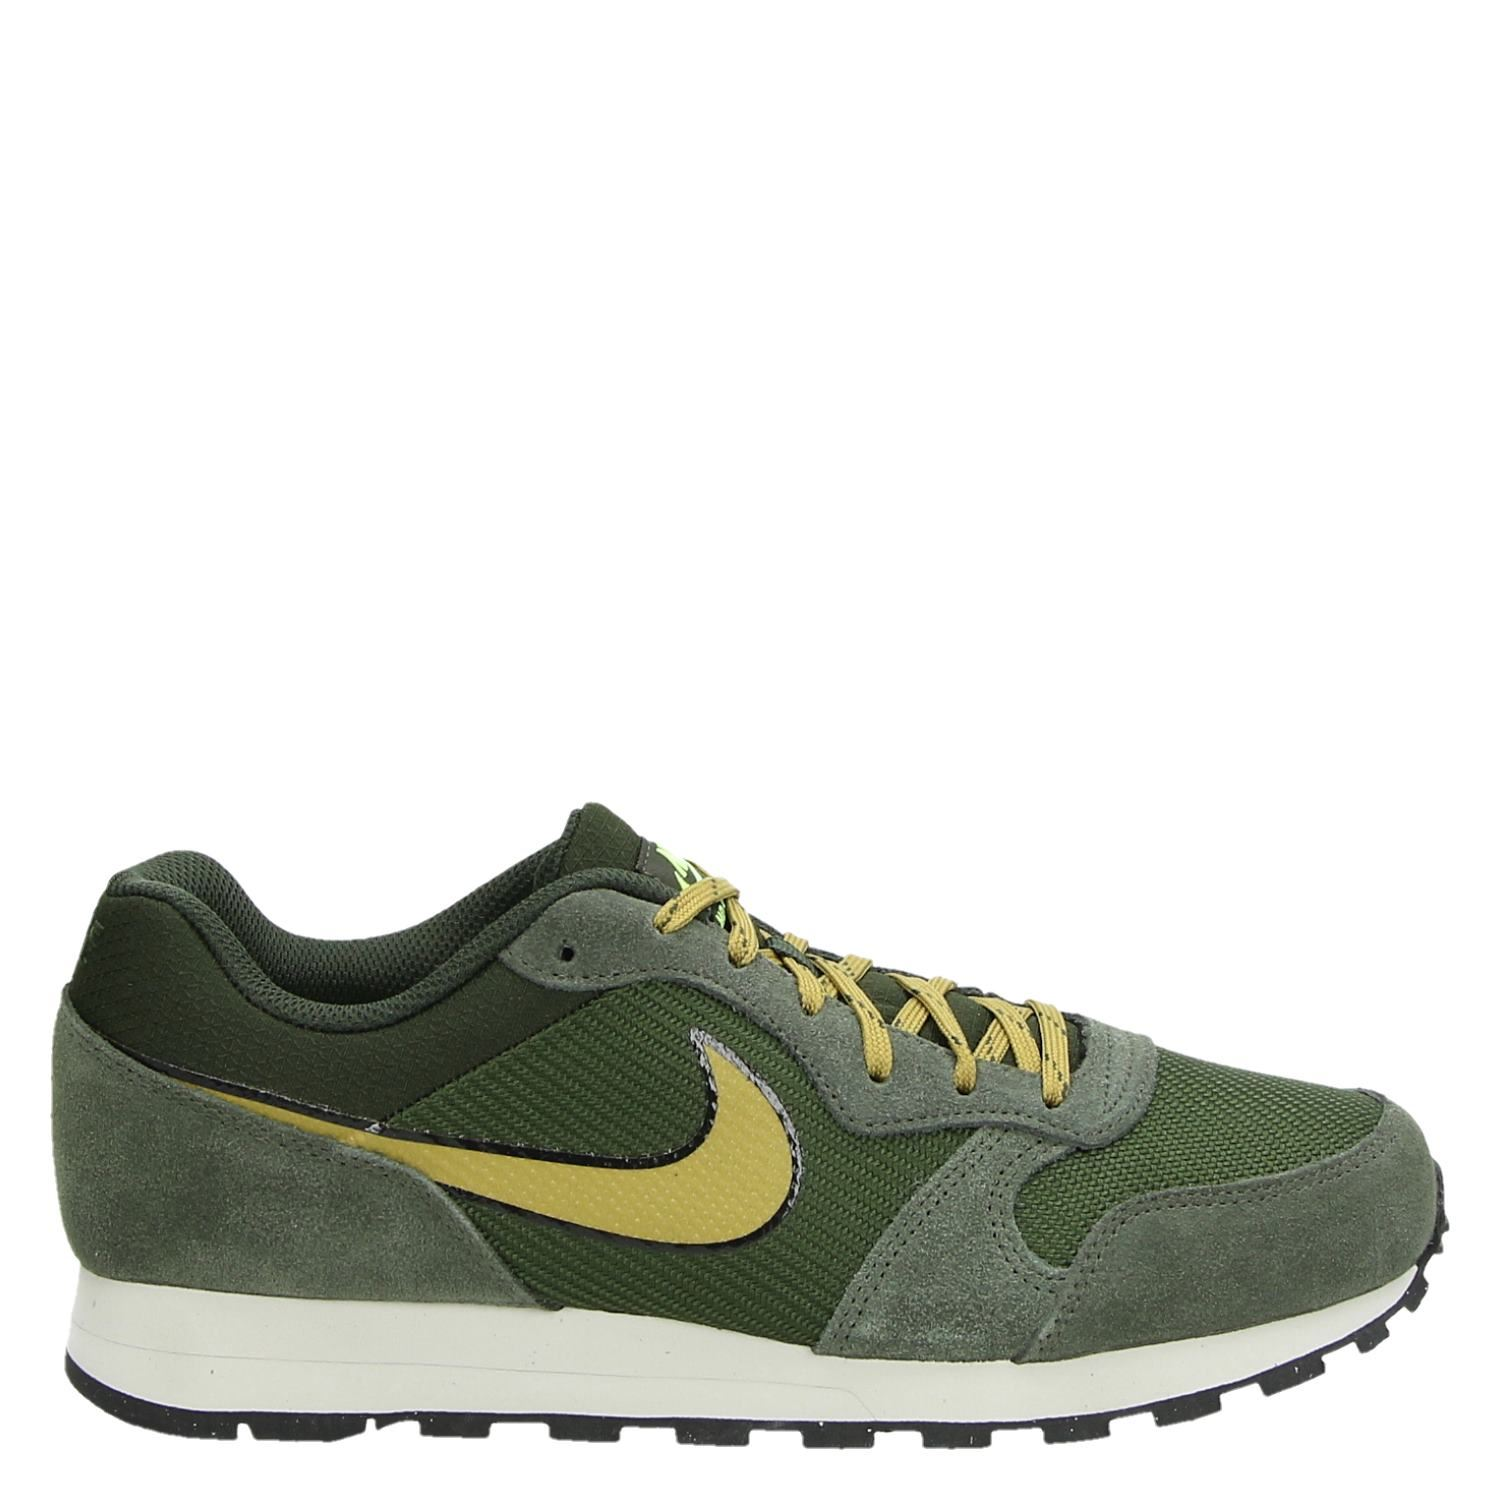 Nike MD Runner 2 heren lage sneakers groen